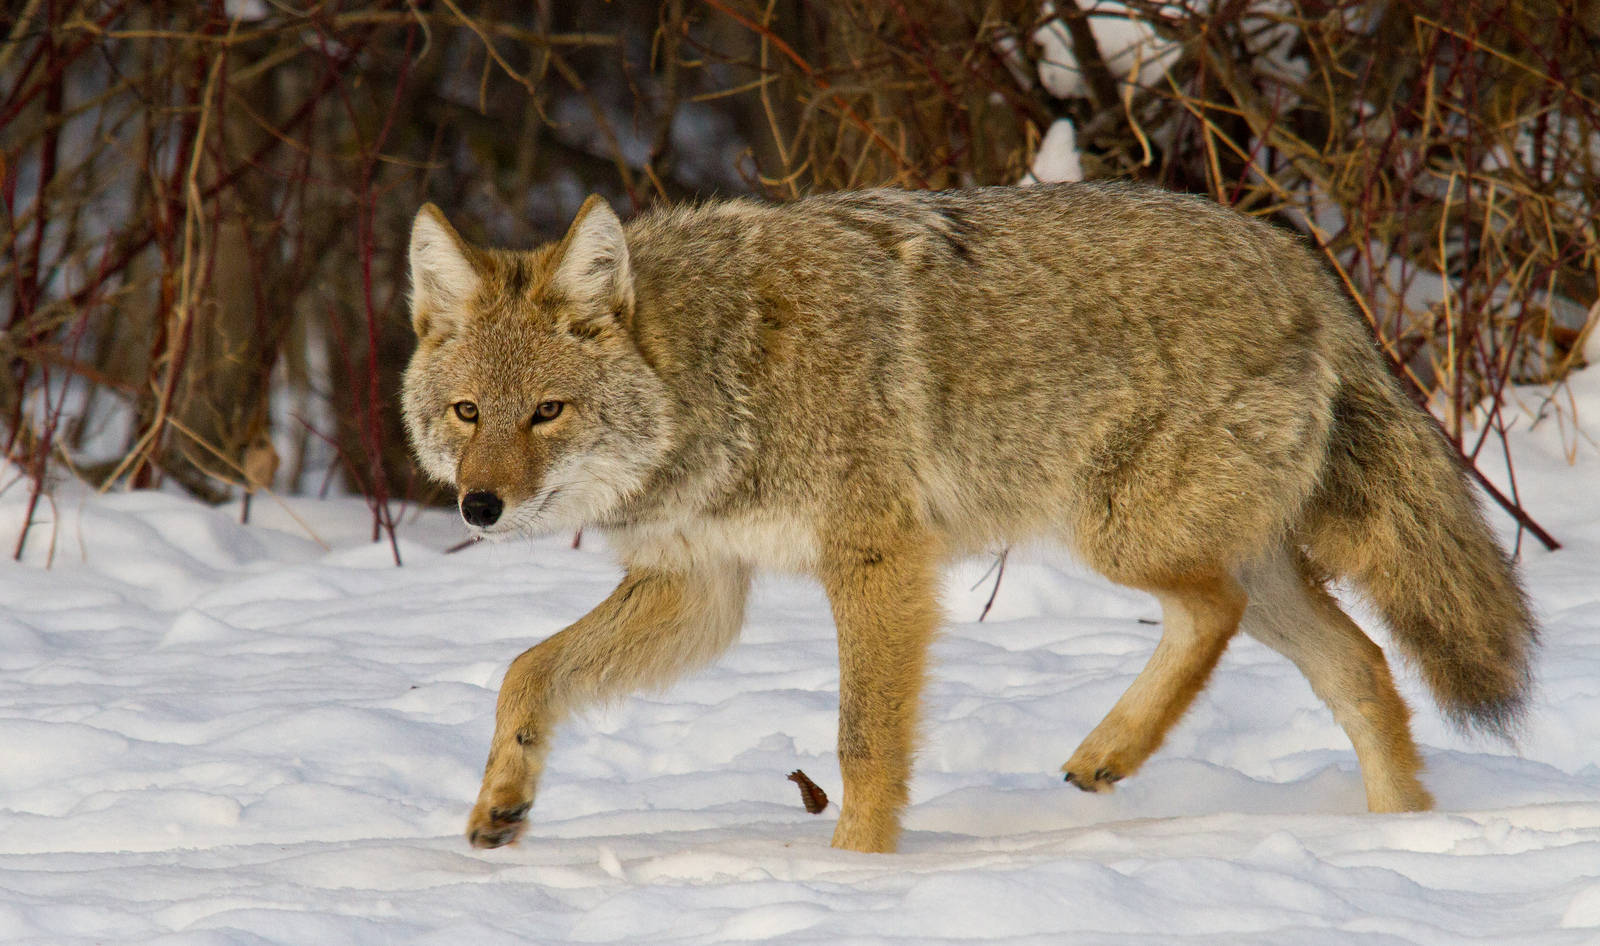 5 Ways U.S. Wildlife Services is Ineffective